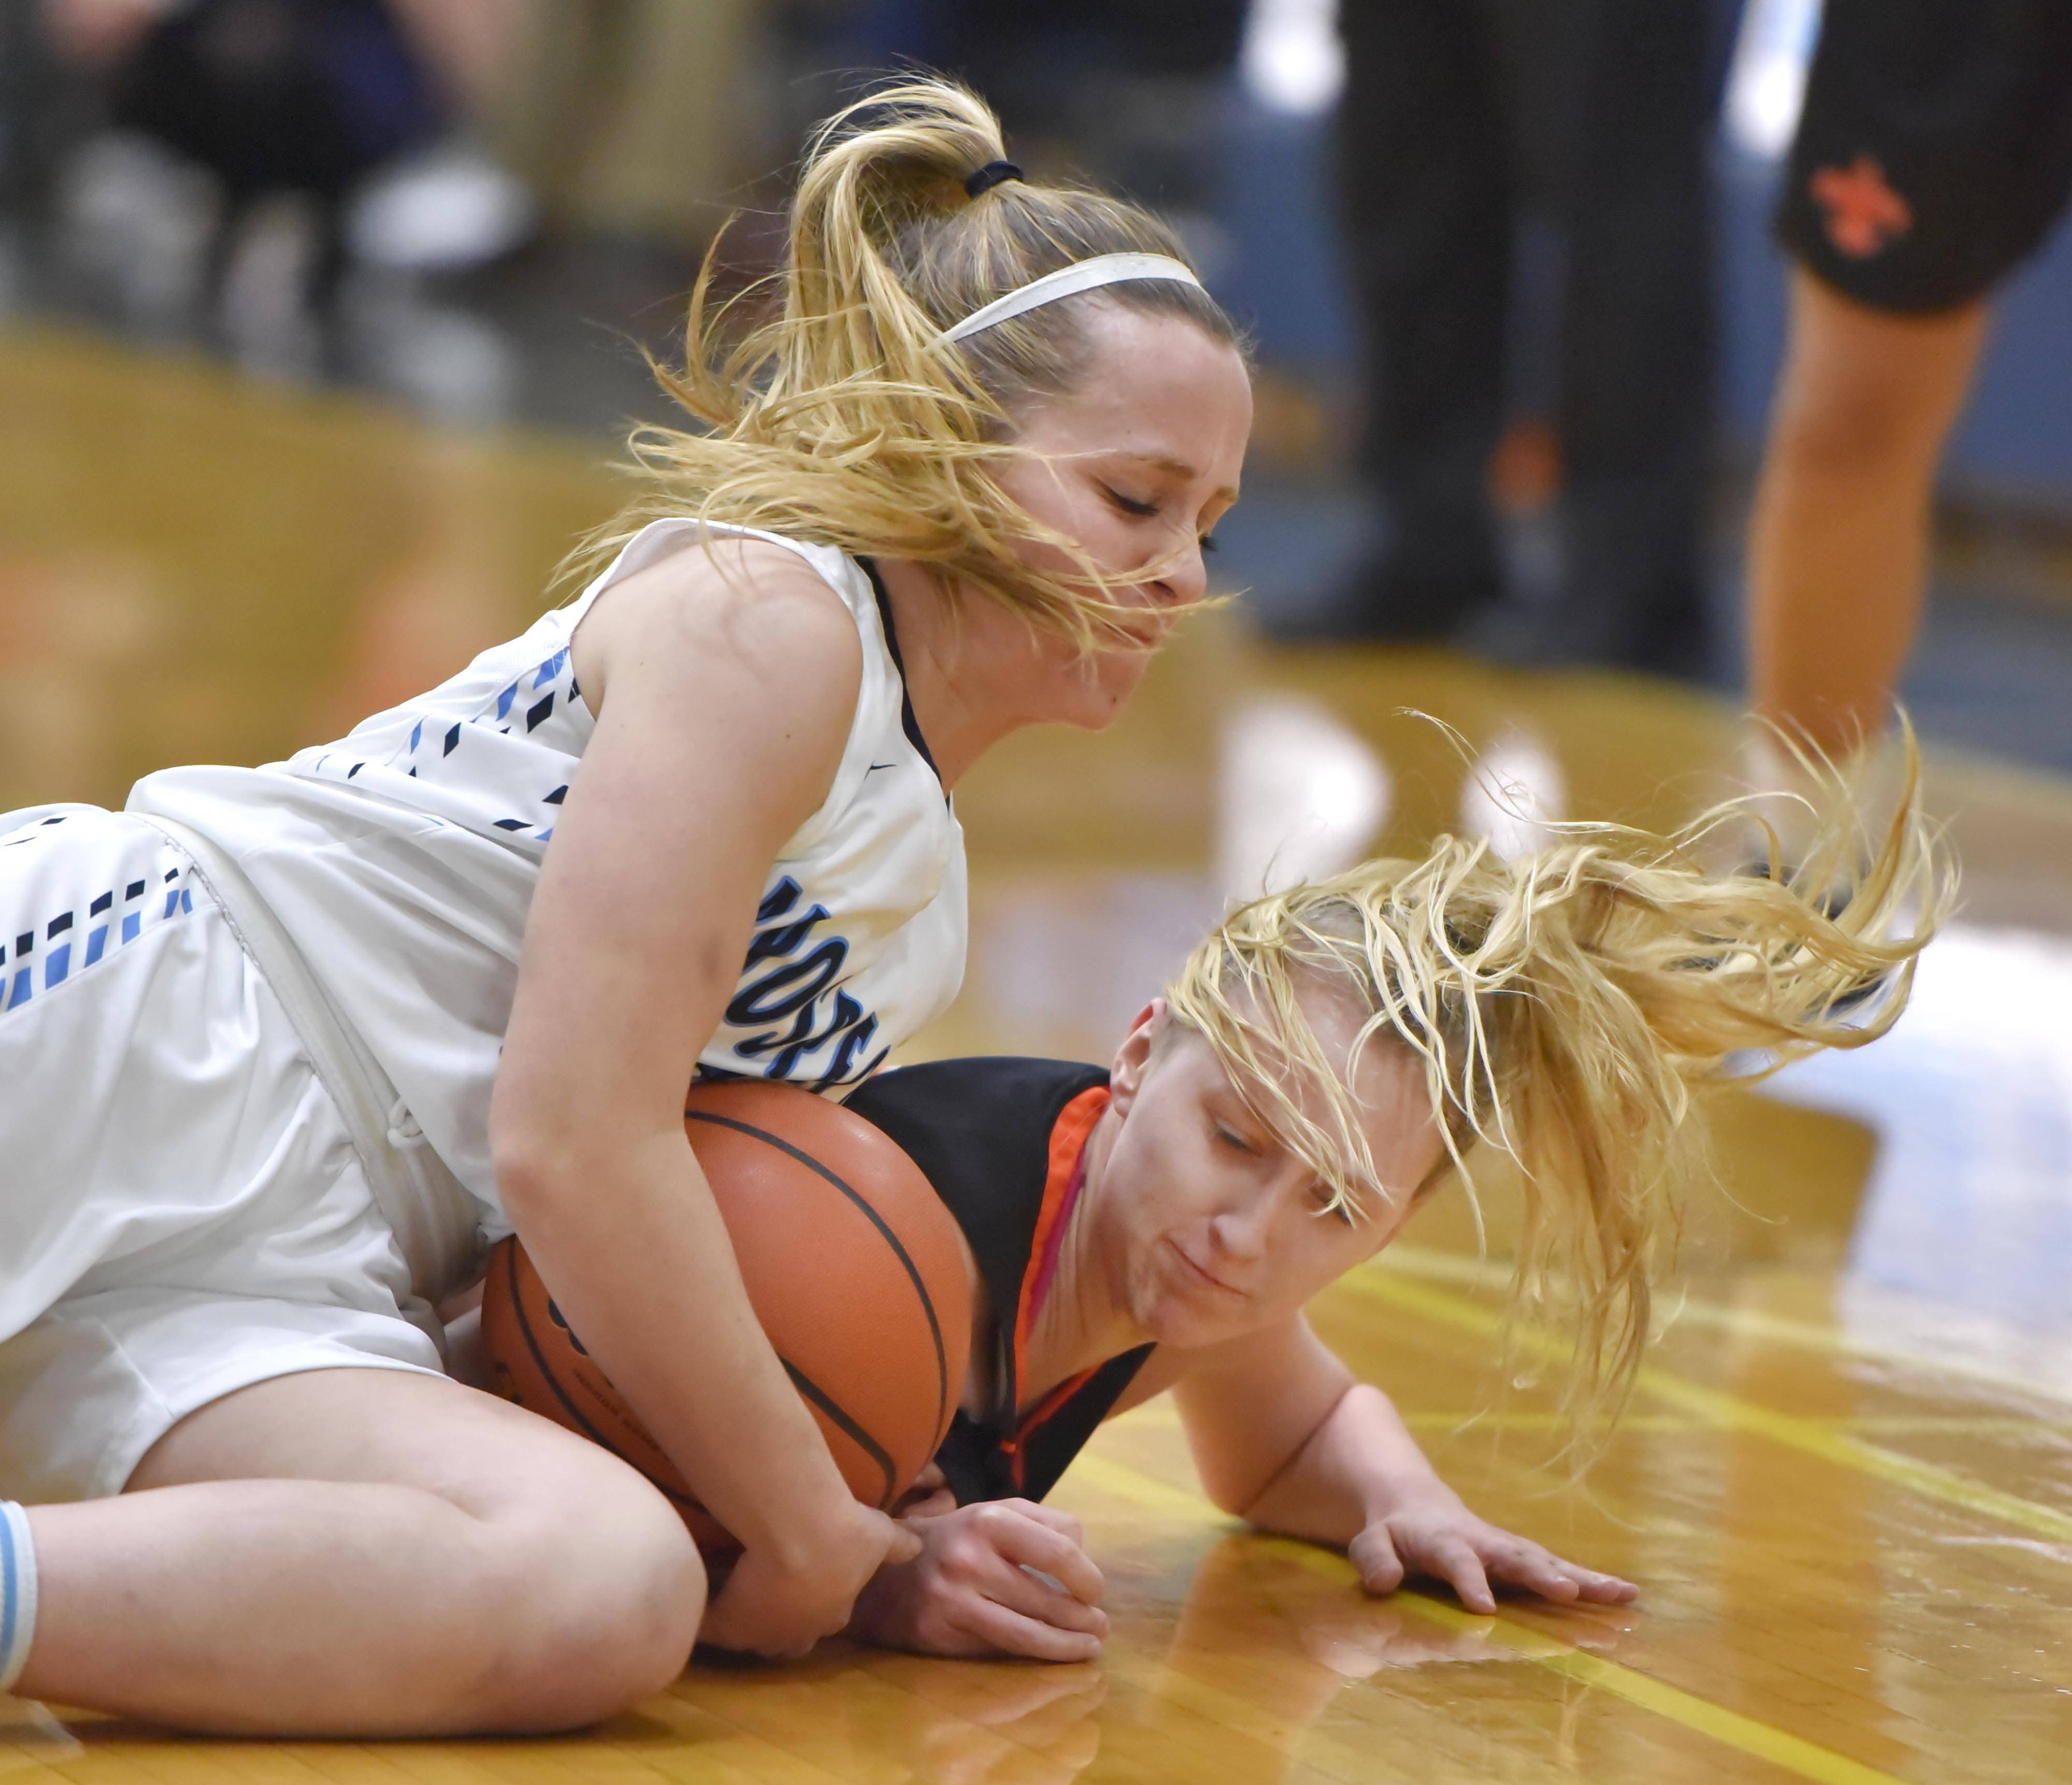 St. Charles East's Alexis Kiefer and Prospect's Helen Siavellis, left, battle for the ball Wednesday in a girls basketball game in Mount Prospect.